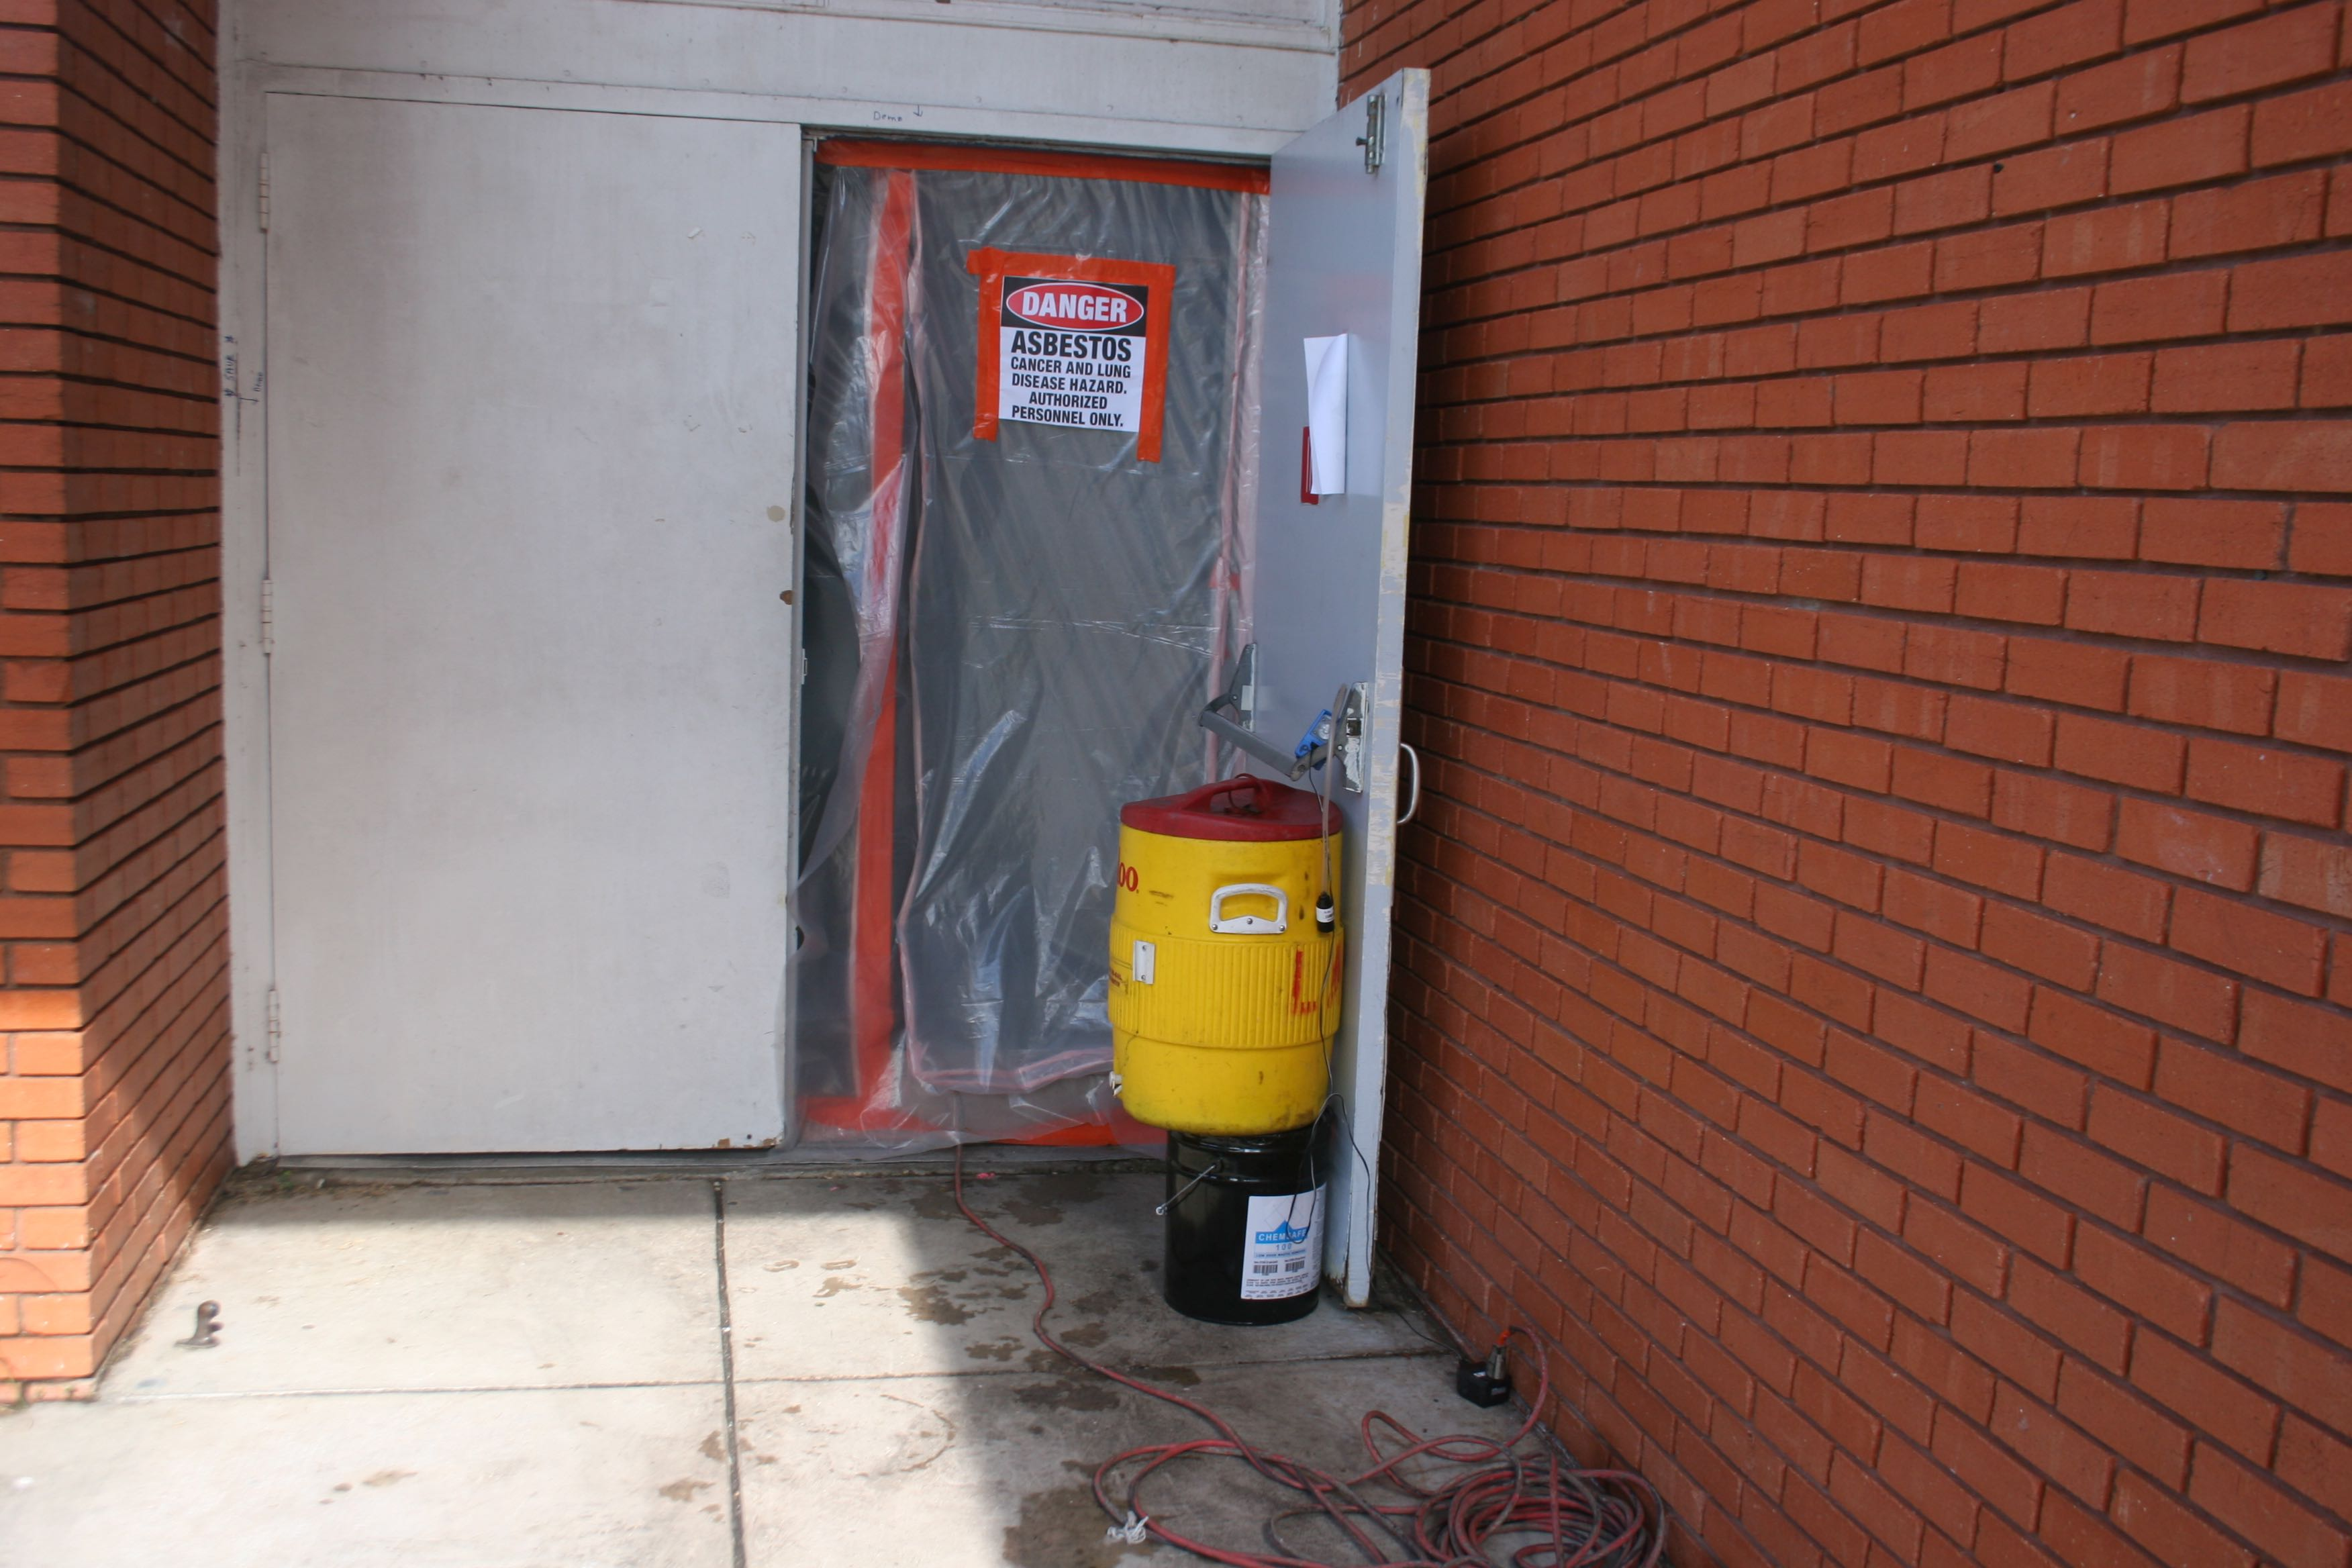 Asbestos Floor Tile Removal In Schools Wynn L White Consulting